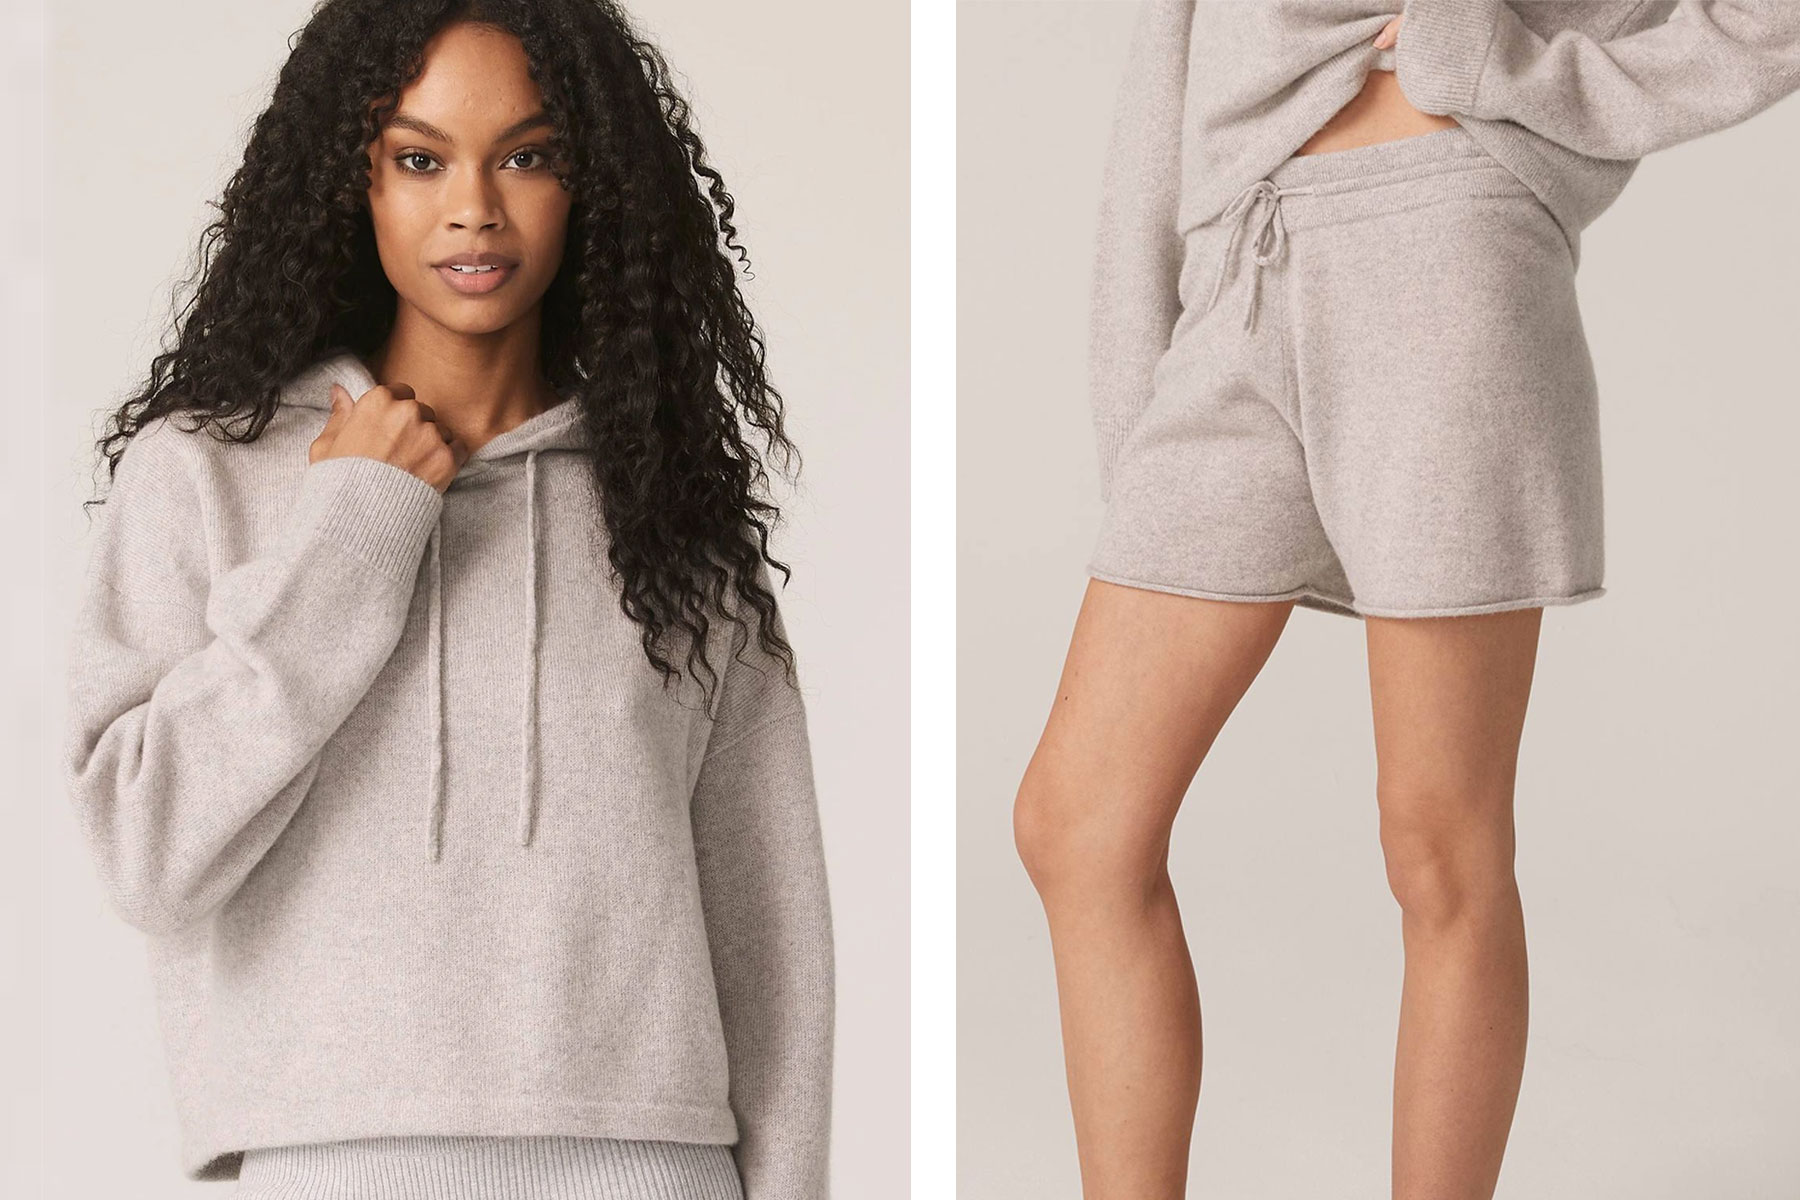 Woman wearing grey cashmere hoodie and shorts